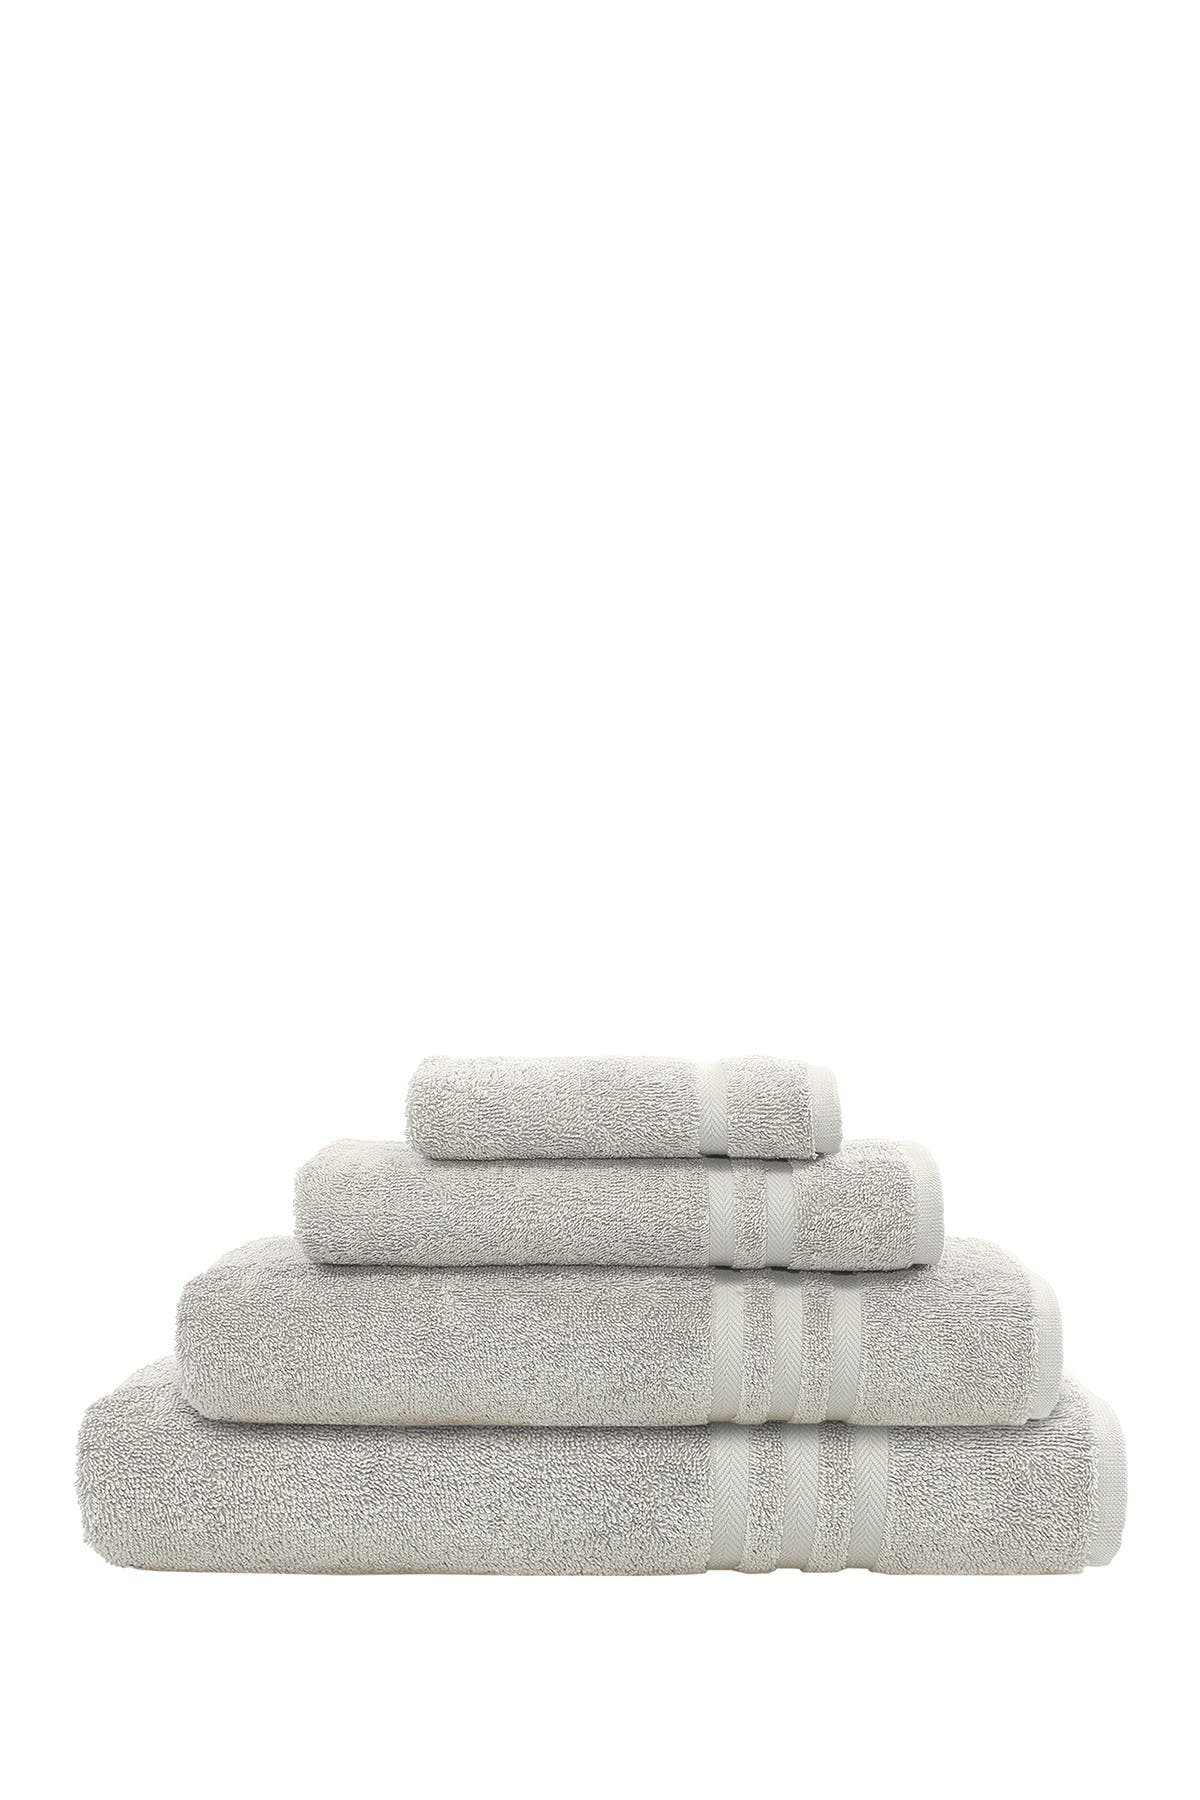 Image of LINUM HOME Denzi 4-Piece Towel Set - Grey